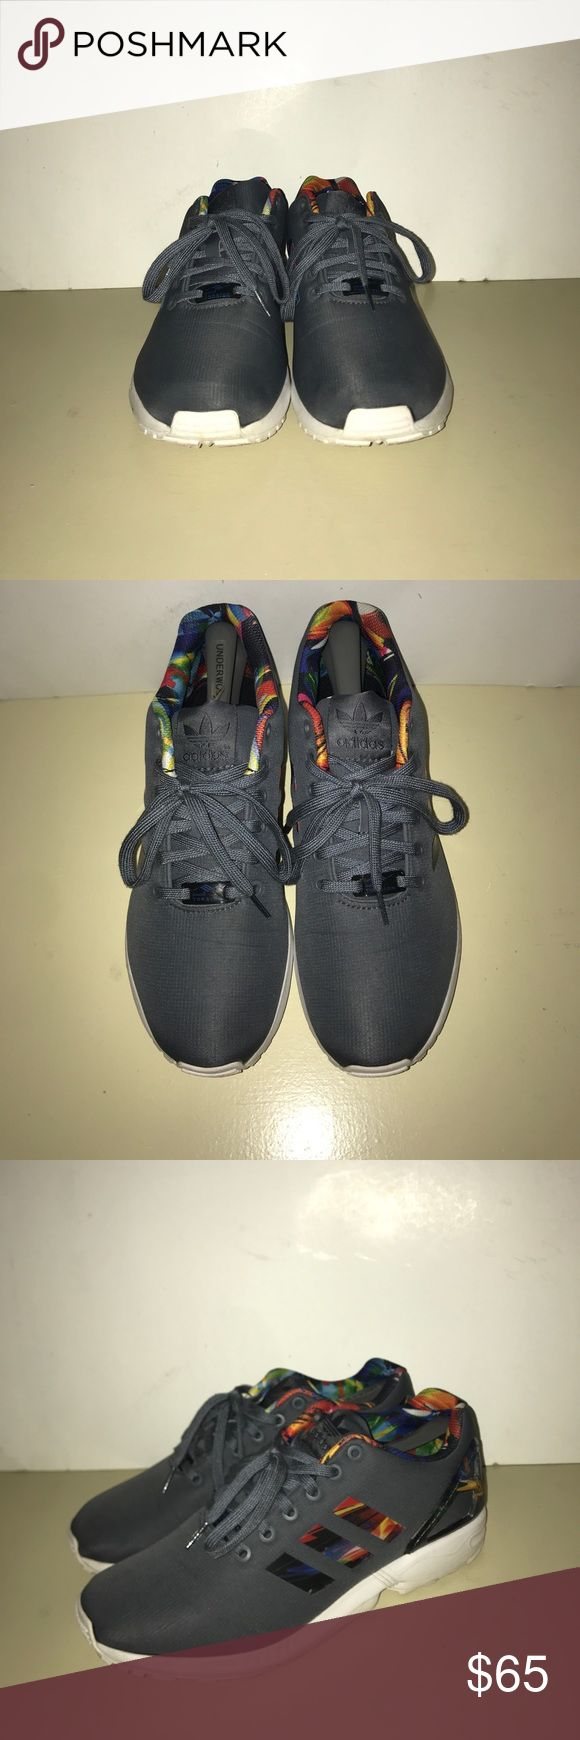 Adidas zx flux Light Onix Worn once! In perfect condition! adidas Shoes Sneakers